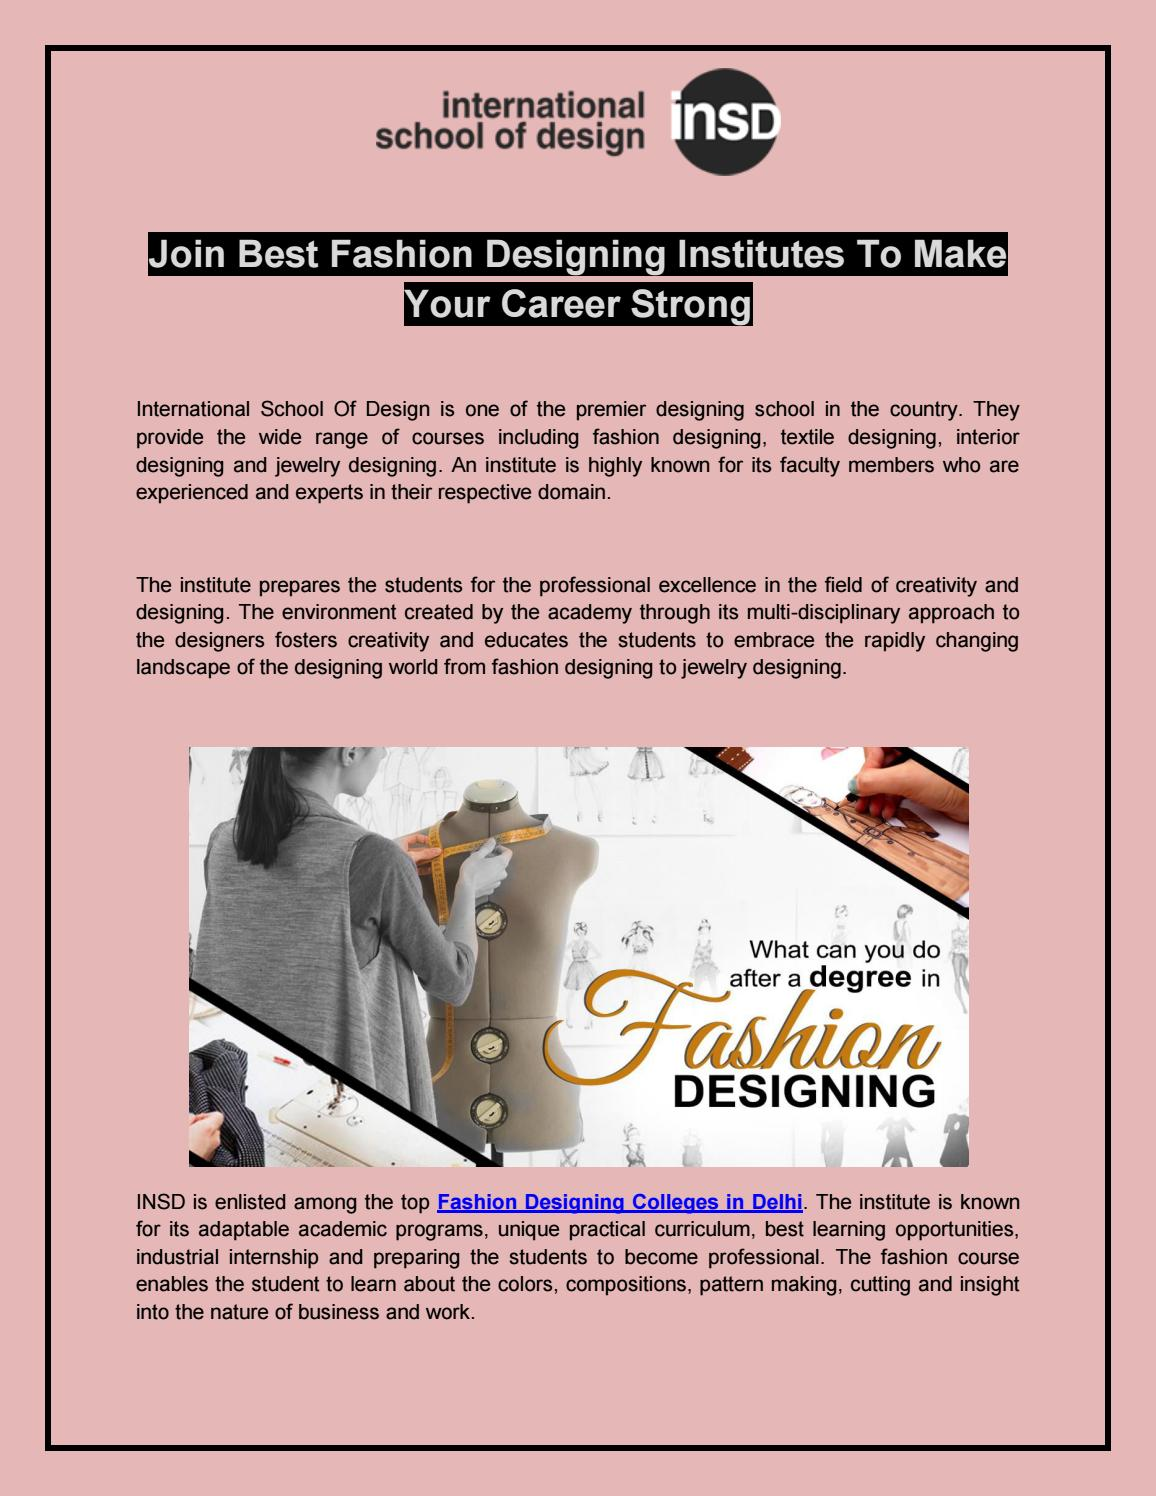 Join Best Fashion Designing Institutes To Make Your Career Strong By Insd Paschim Vihar Issuu